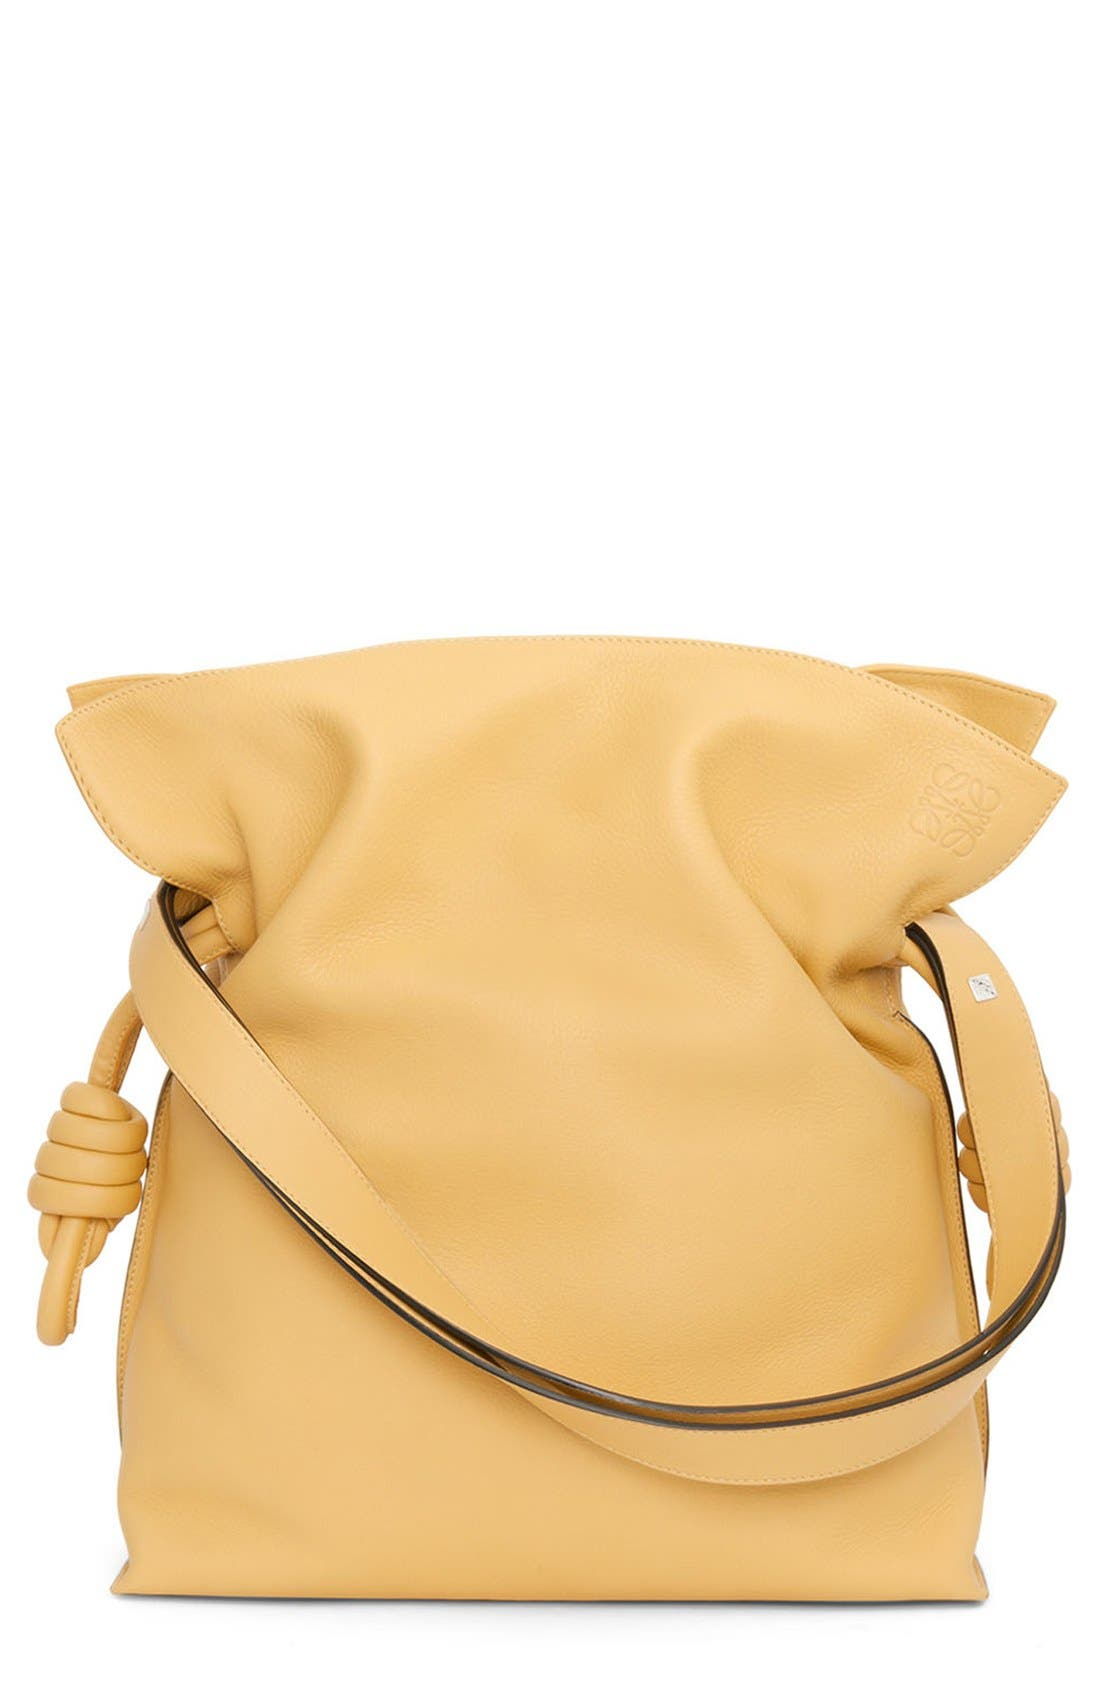 main image loewe uflamenco knotu calfskin leather bag